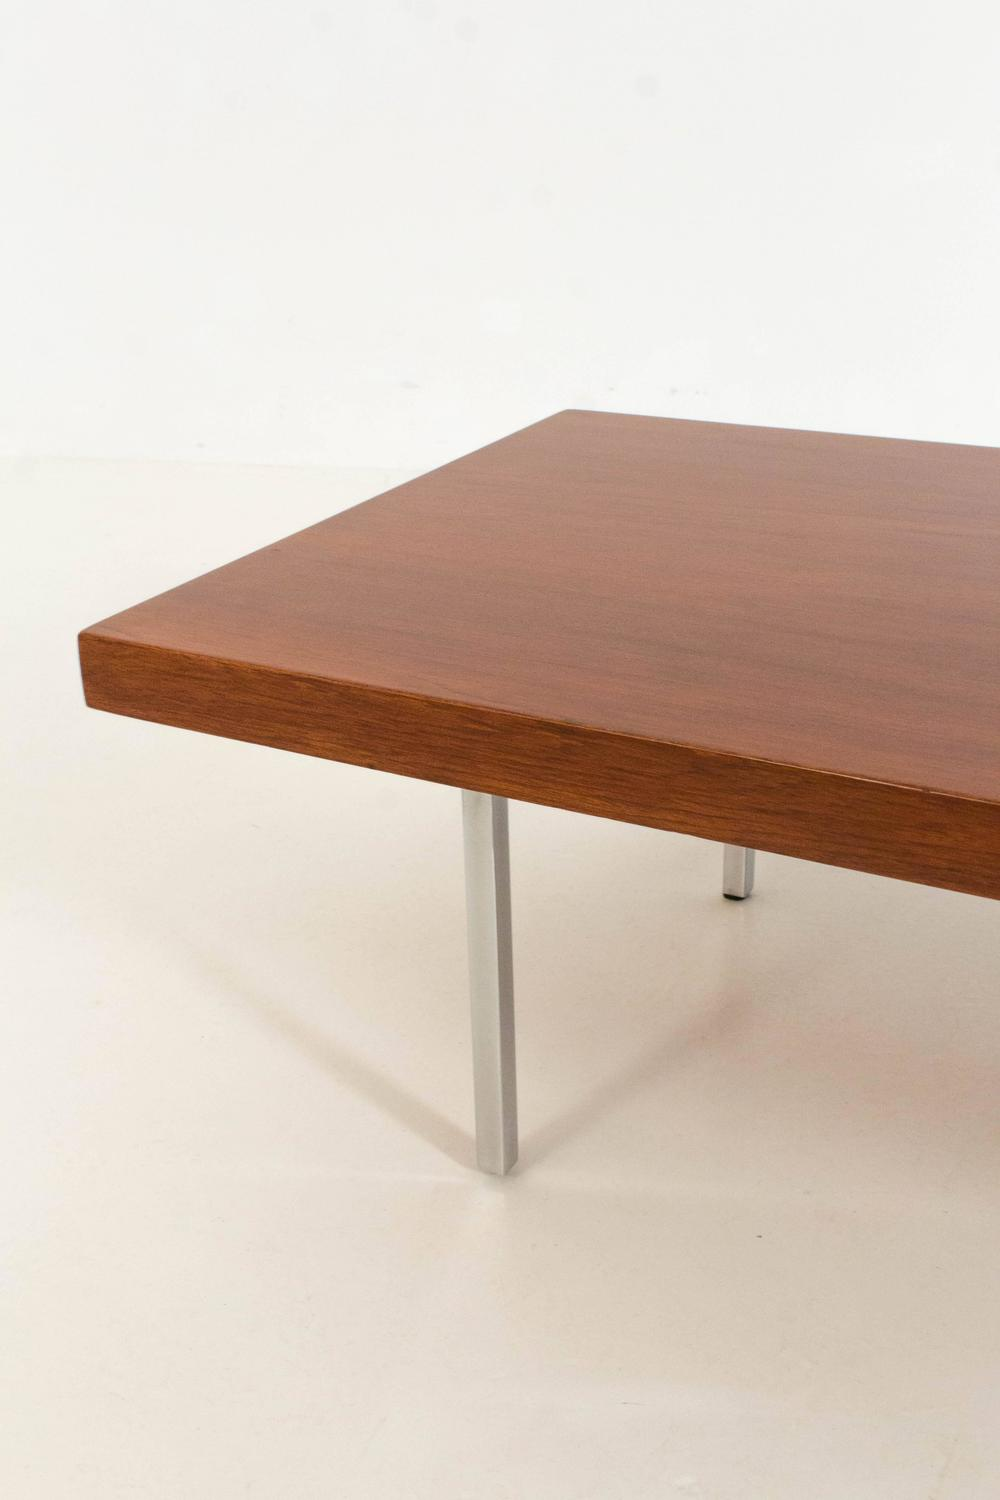 Funky mid century modern coffee table by kho liang le for artifort at 1stdibs Funky coffee table